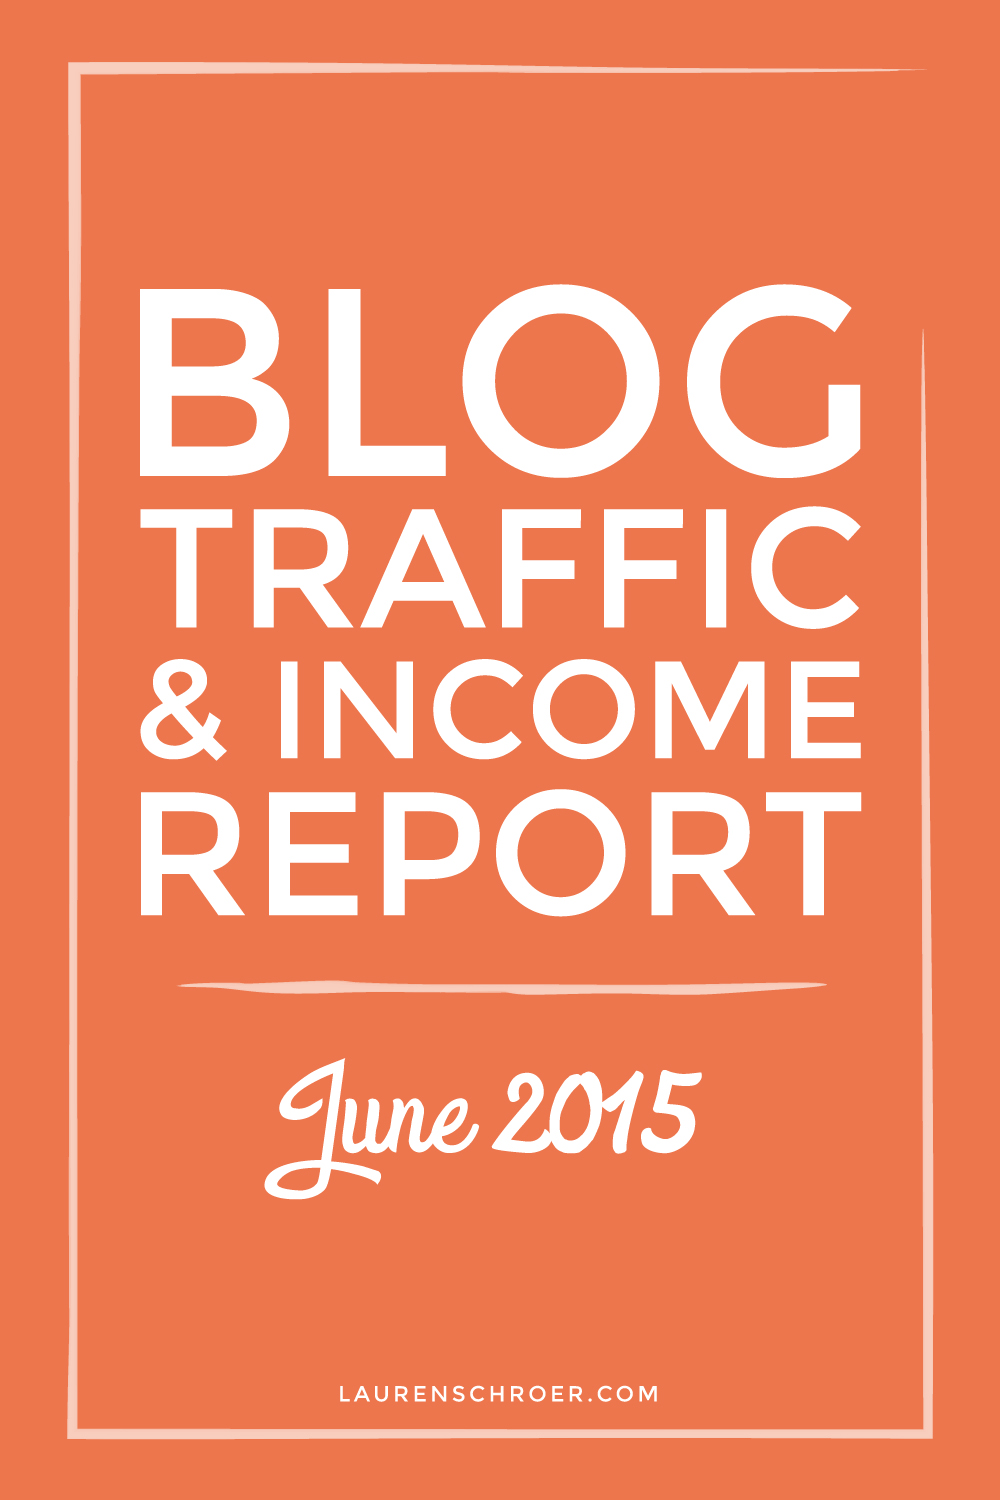 Blog Traffic and Income Report | June 2015 - laurenschroer.com